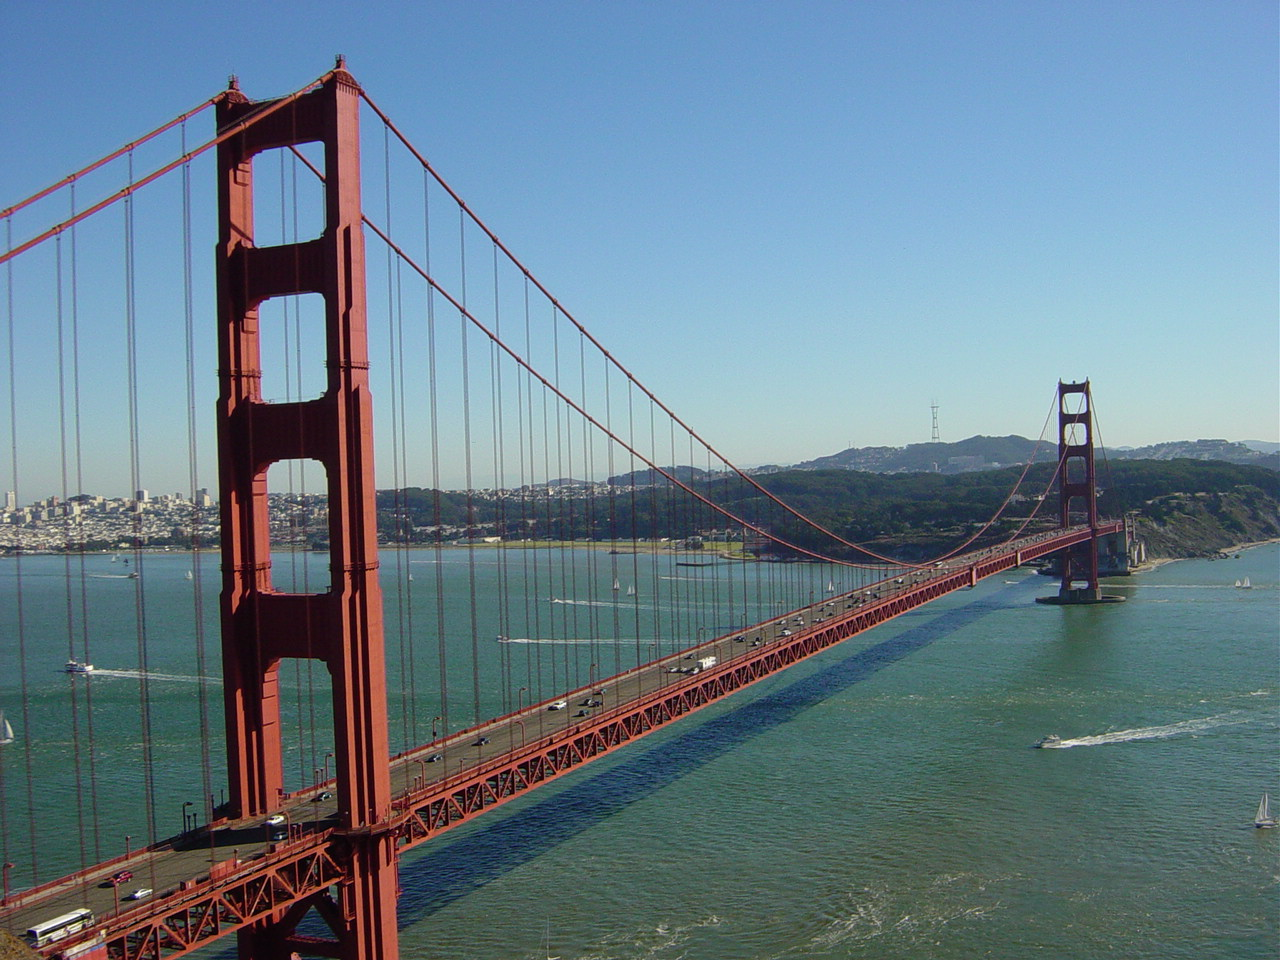 The Golden Gate Bridge is a suspension bridge, the one-mile-wide (1.6 km), three-mile-long (4.8 km) channel between San Francisco Bay and the Pacific Ocean. The structure links the U.S. city of San Francisco, on the northern tip of the San Francisco Peninsula, to Marin County.